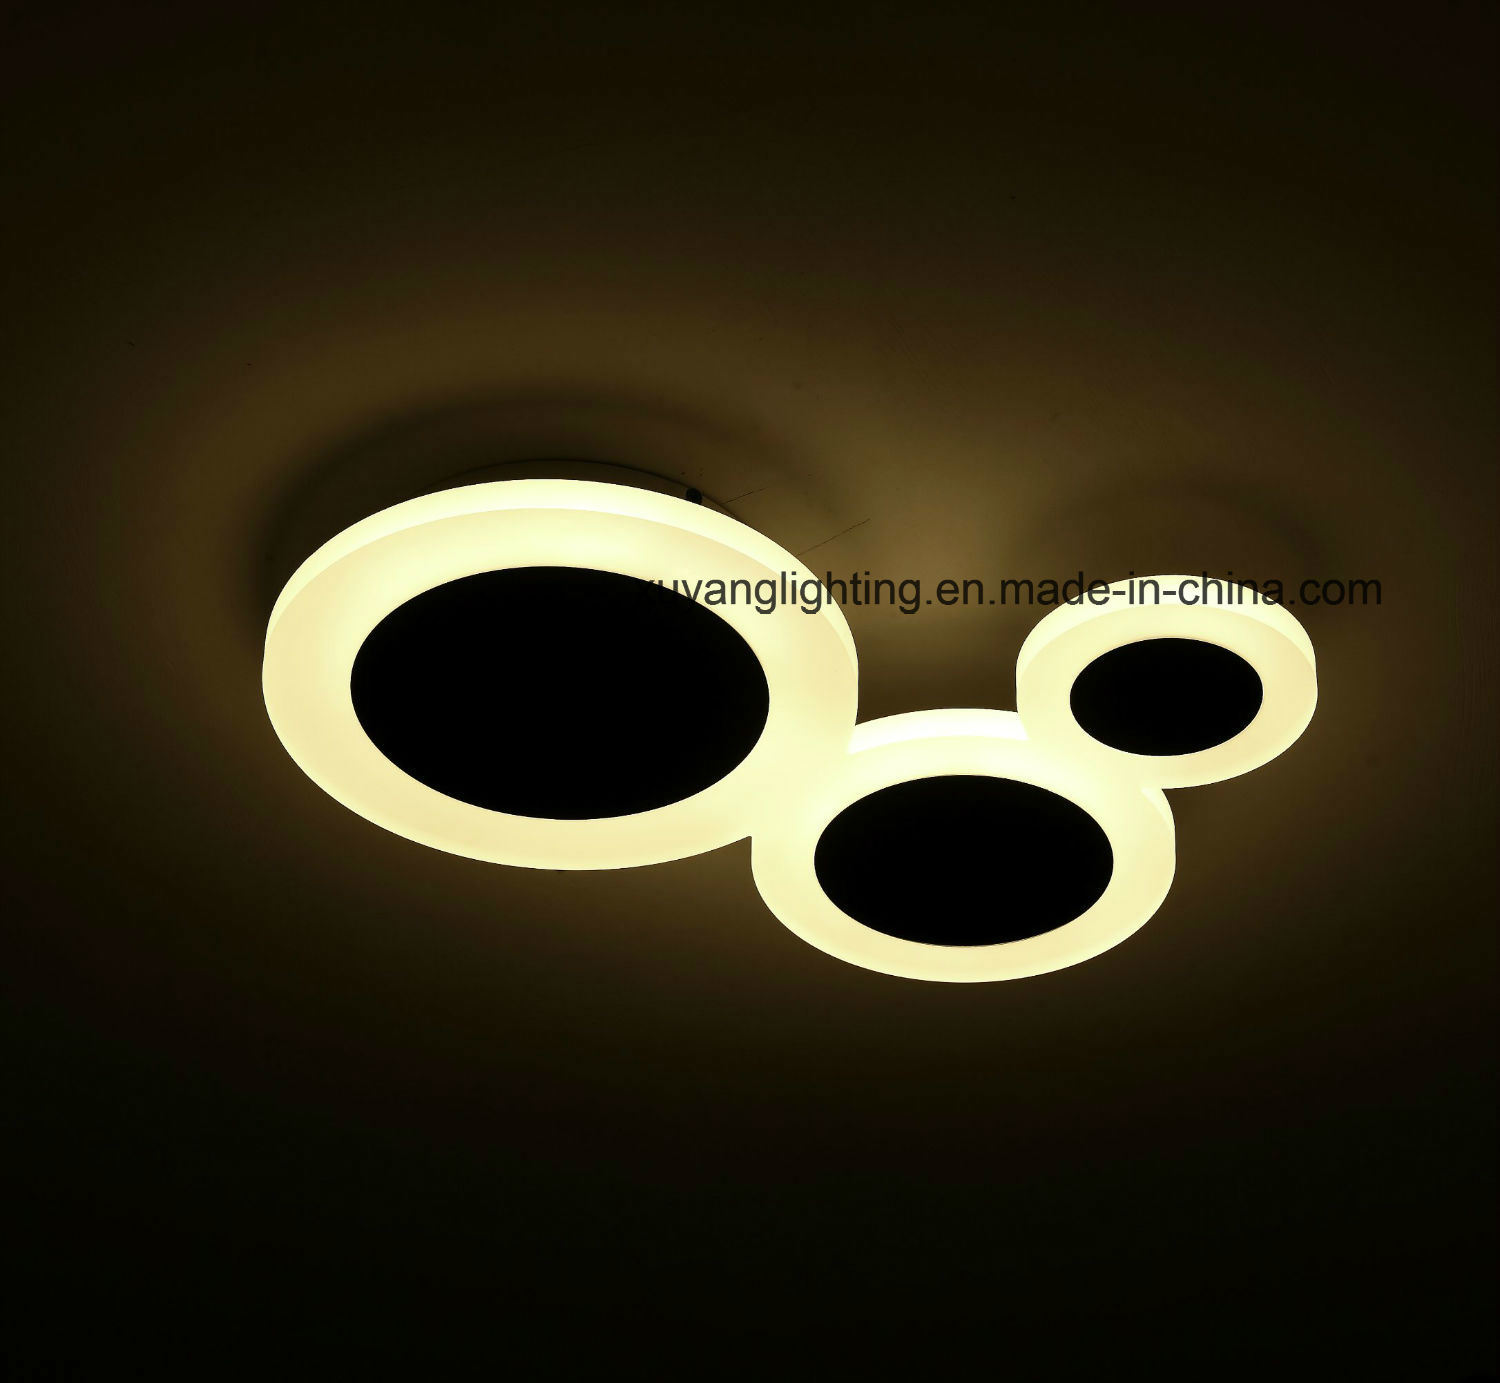 Latest LED Ceiling Lamp for Decoration, Hot Sales Ceiling Light for Children Room